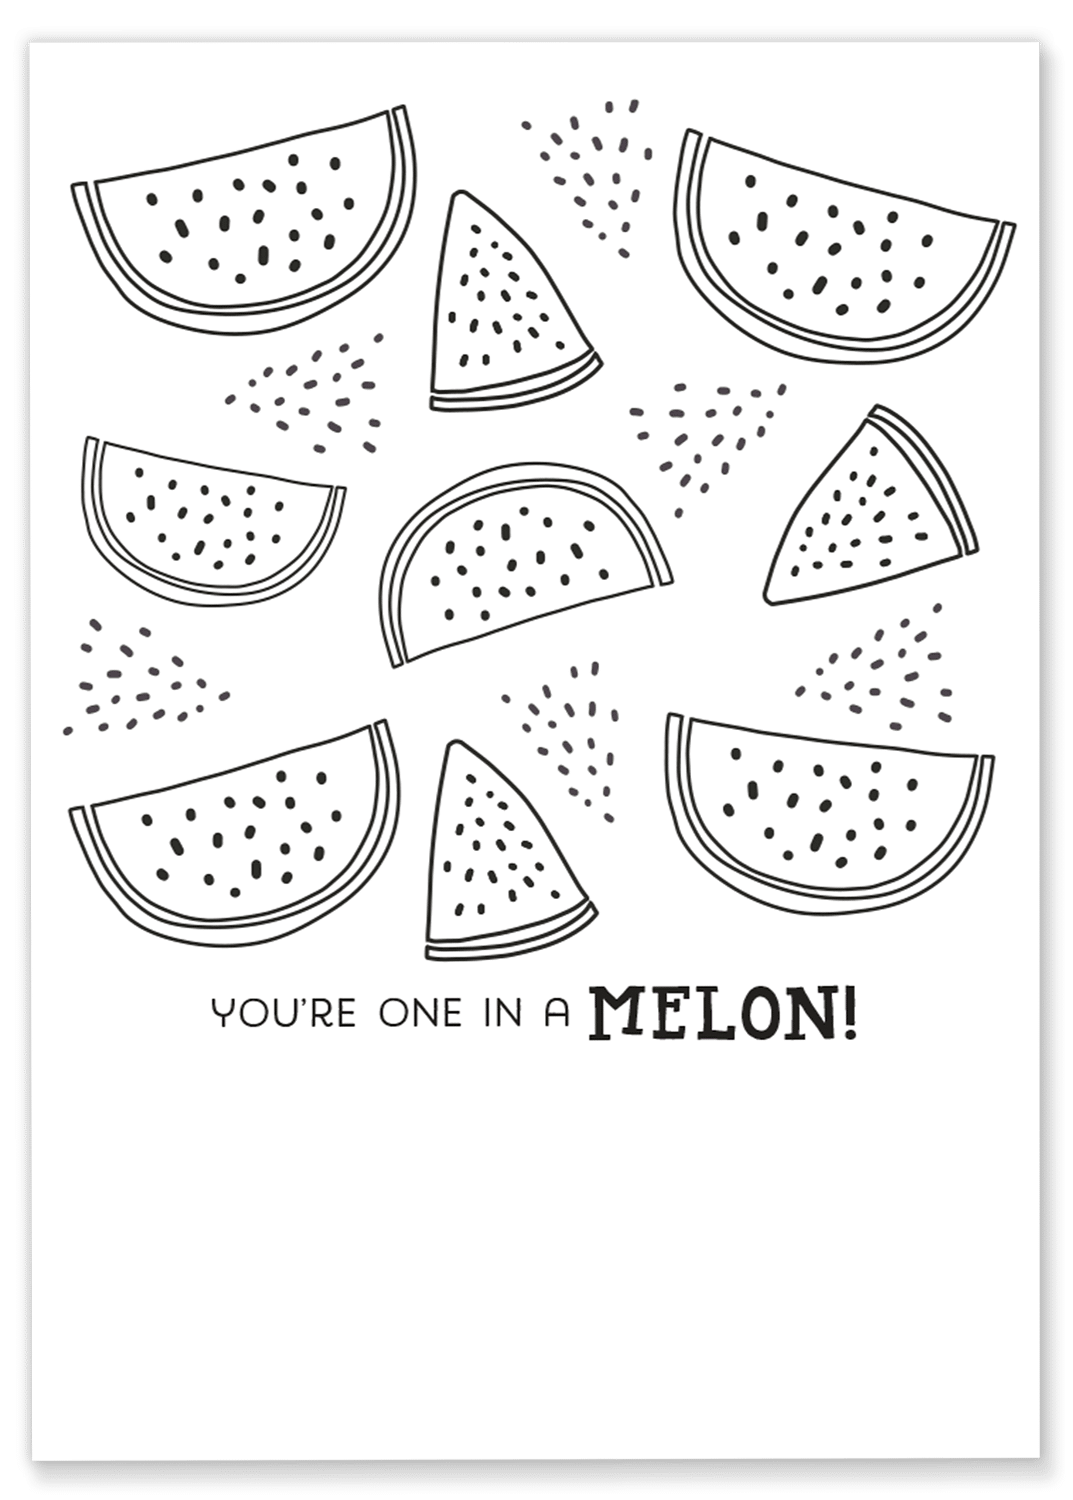 Free watermelon printable to brighten the day of a friend